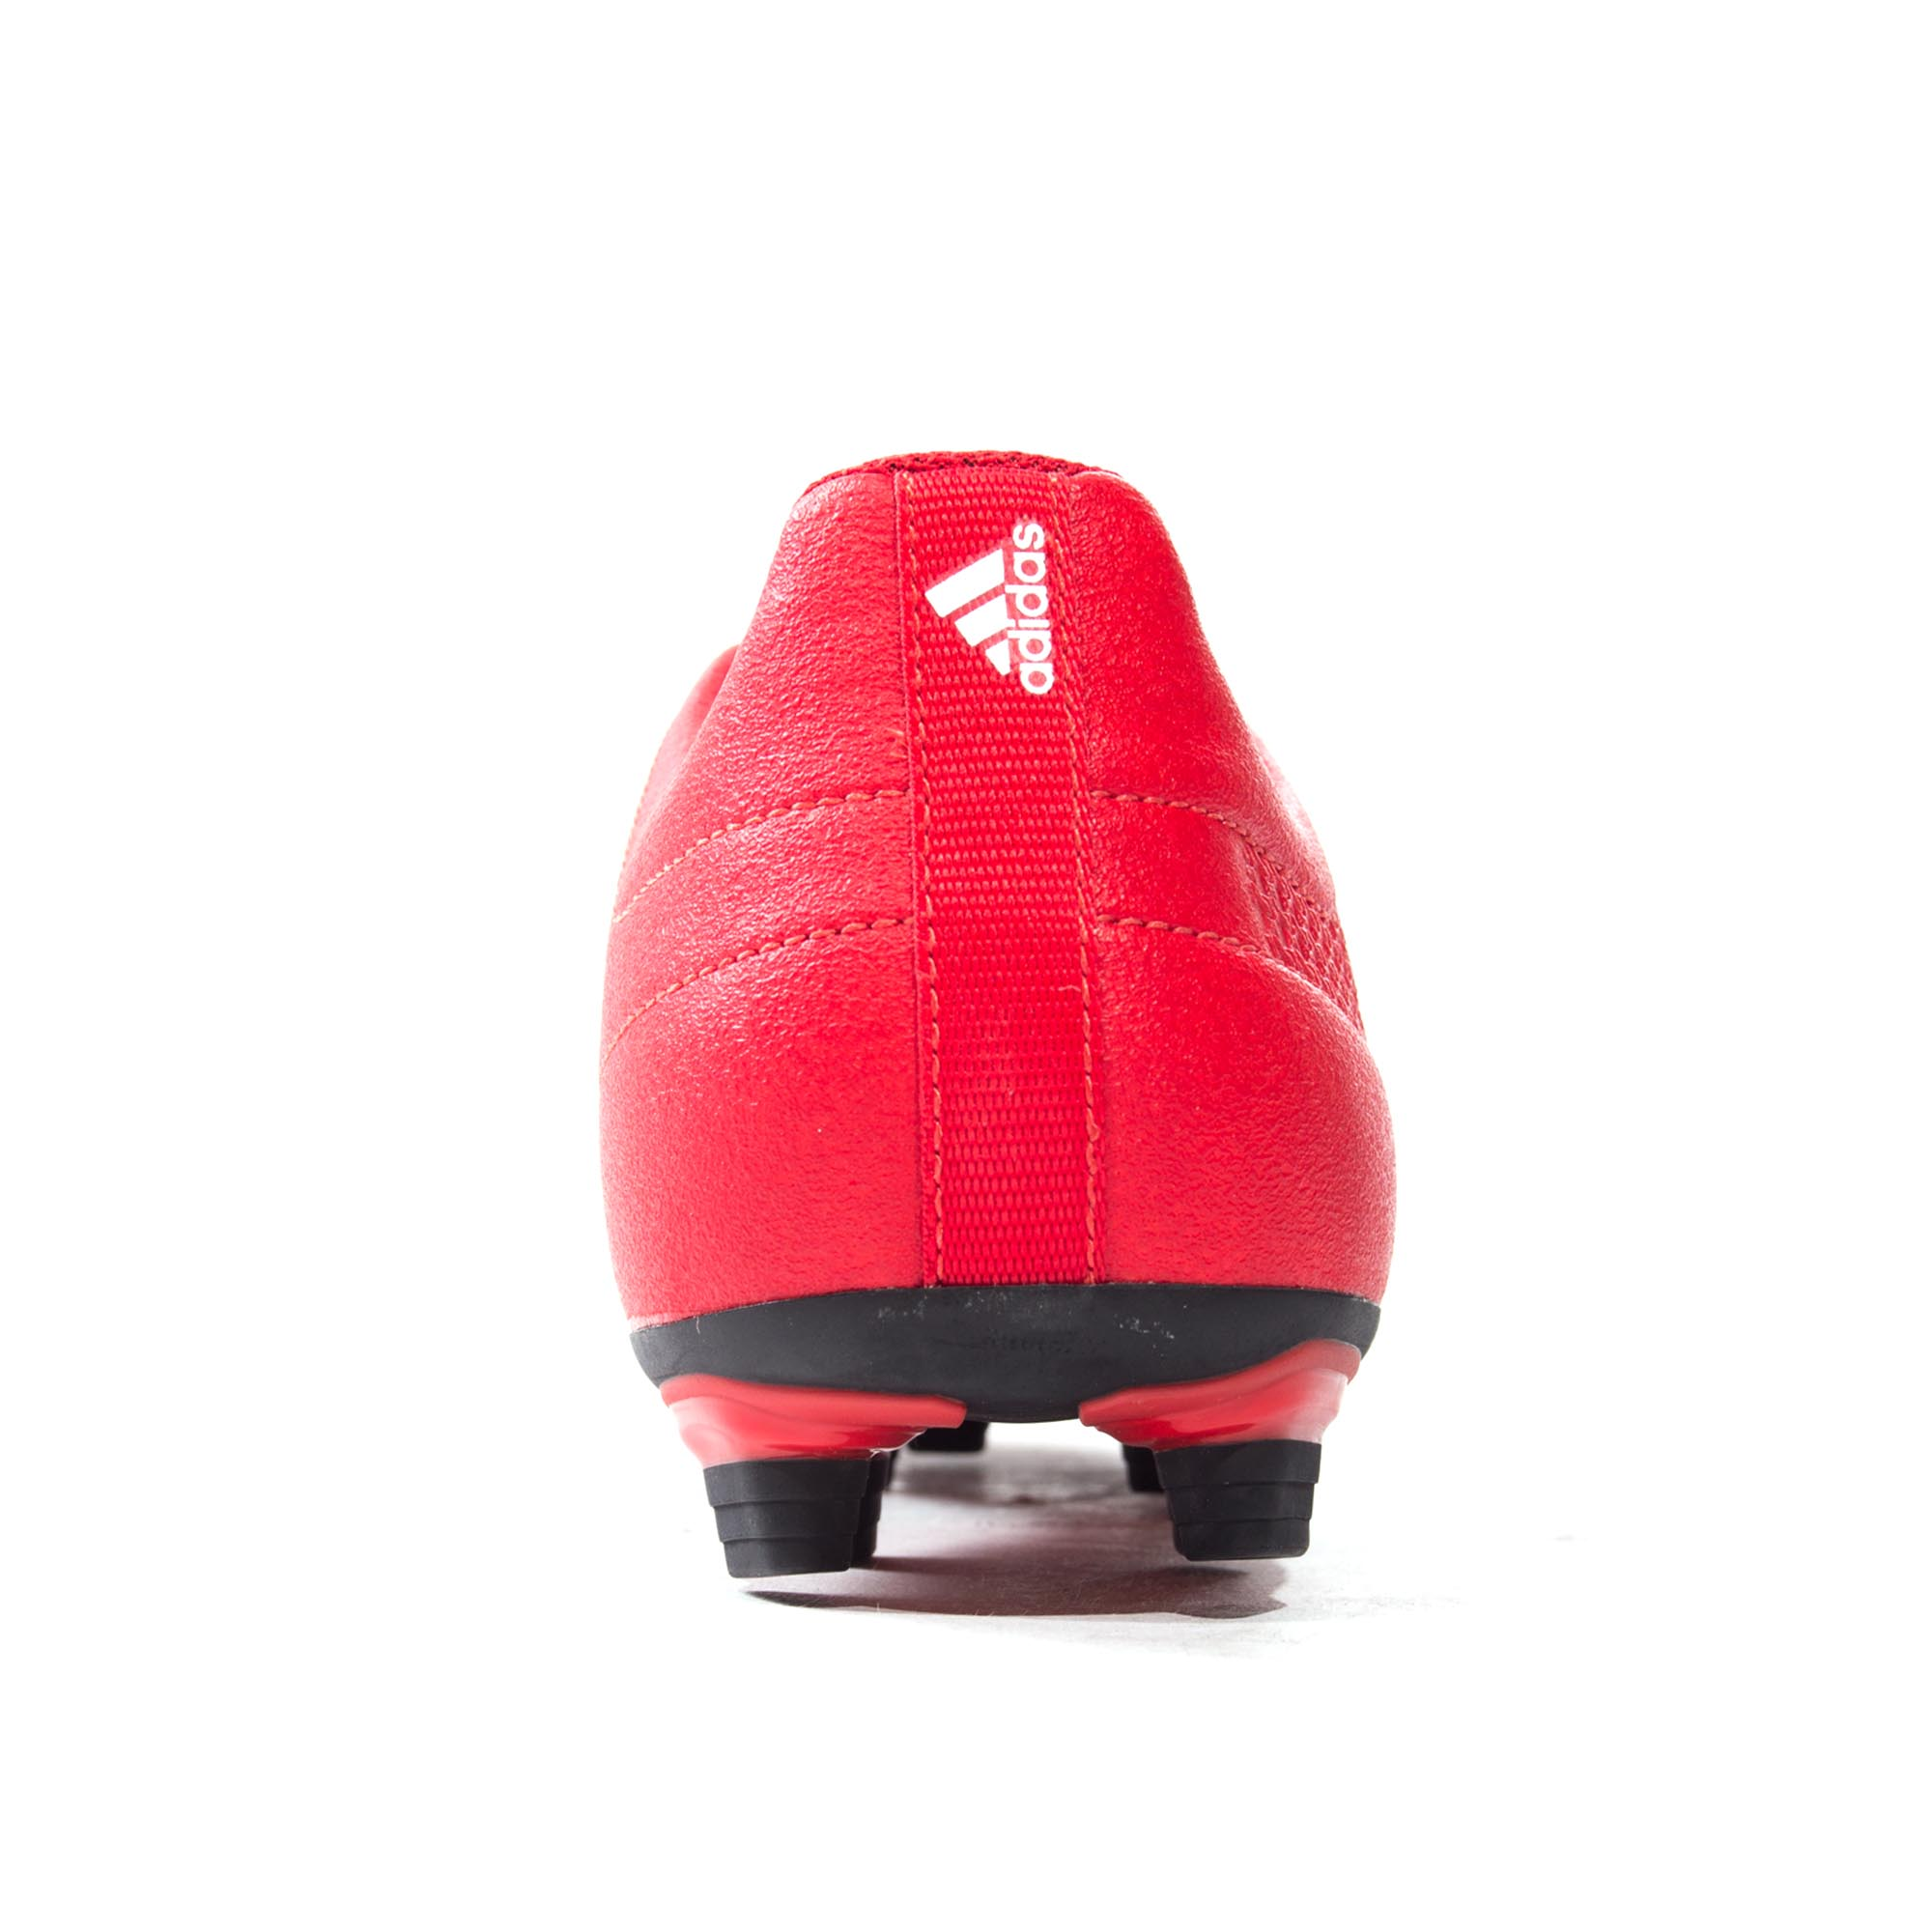 ADIDAS-ACE-17-4-FG-Firm-Ground-pour-homme-Football-Boot-Noir-Rouge miniature 10